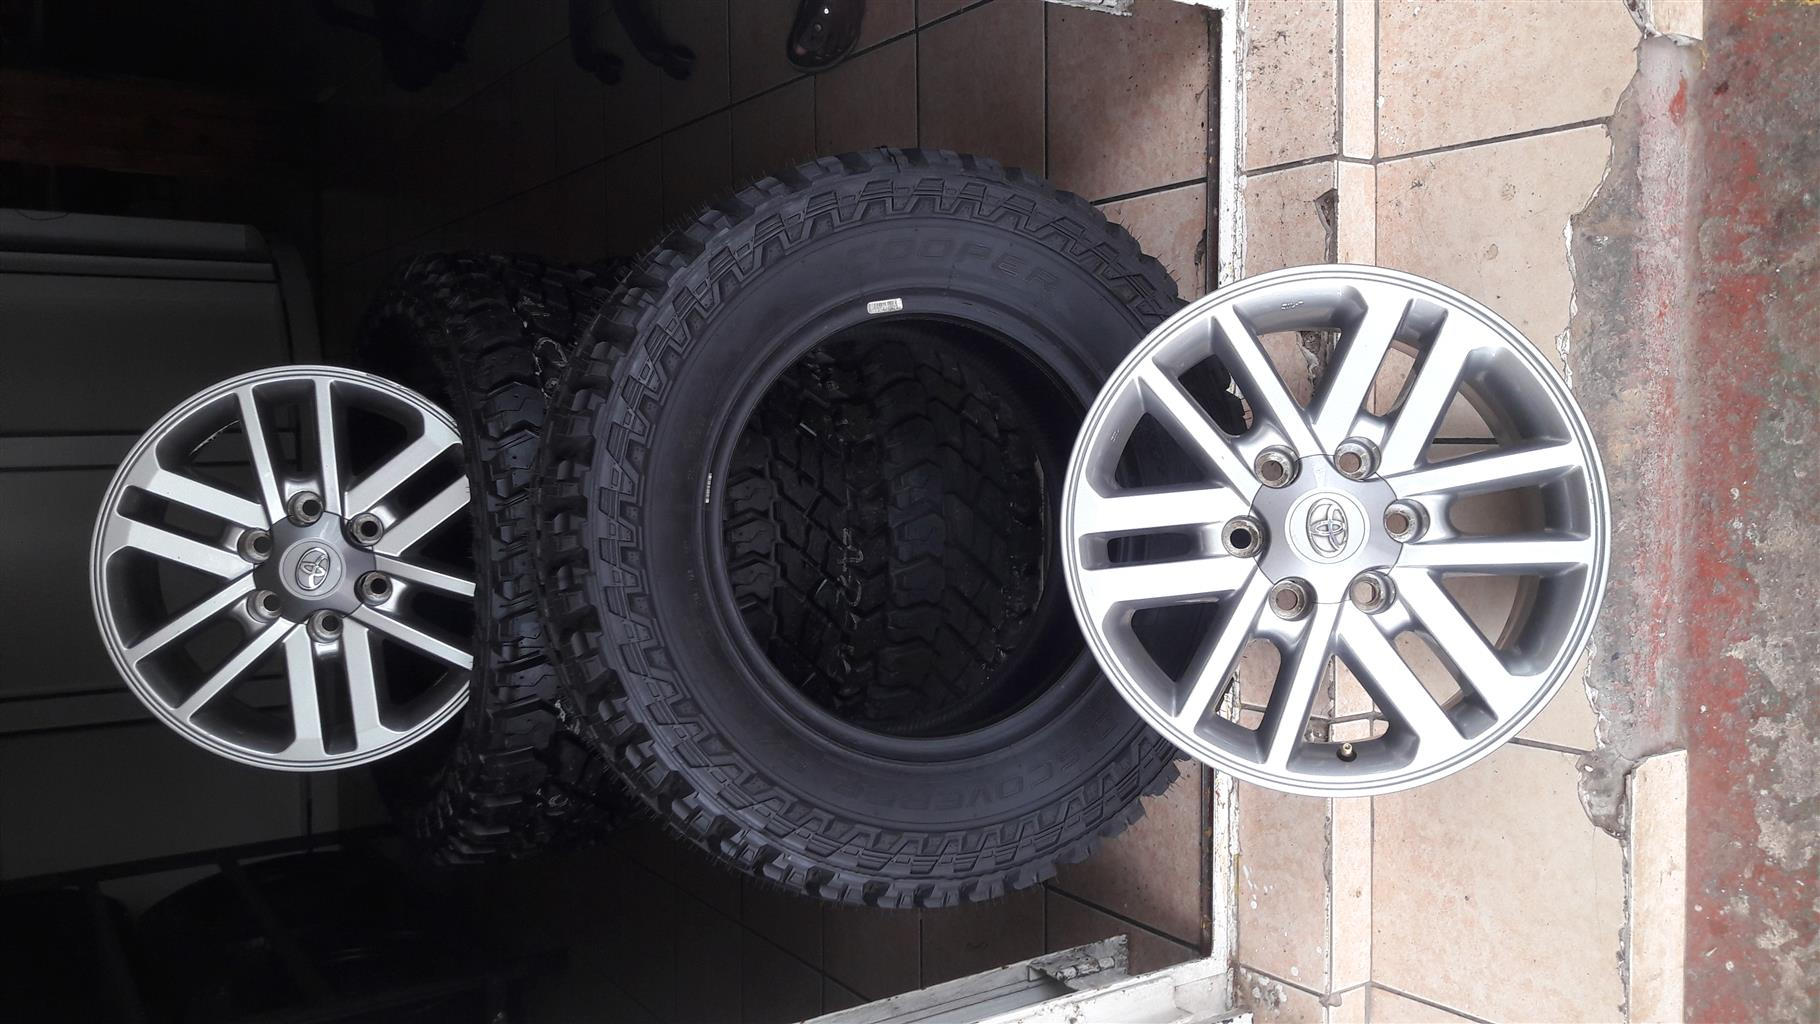 """New LT 265/65/17"""" M+S copper discover tyres and dakar fortuna mags for 18499 (set of4), prices include fitment."""